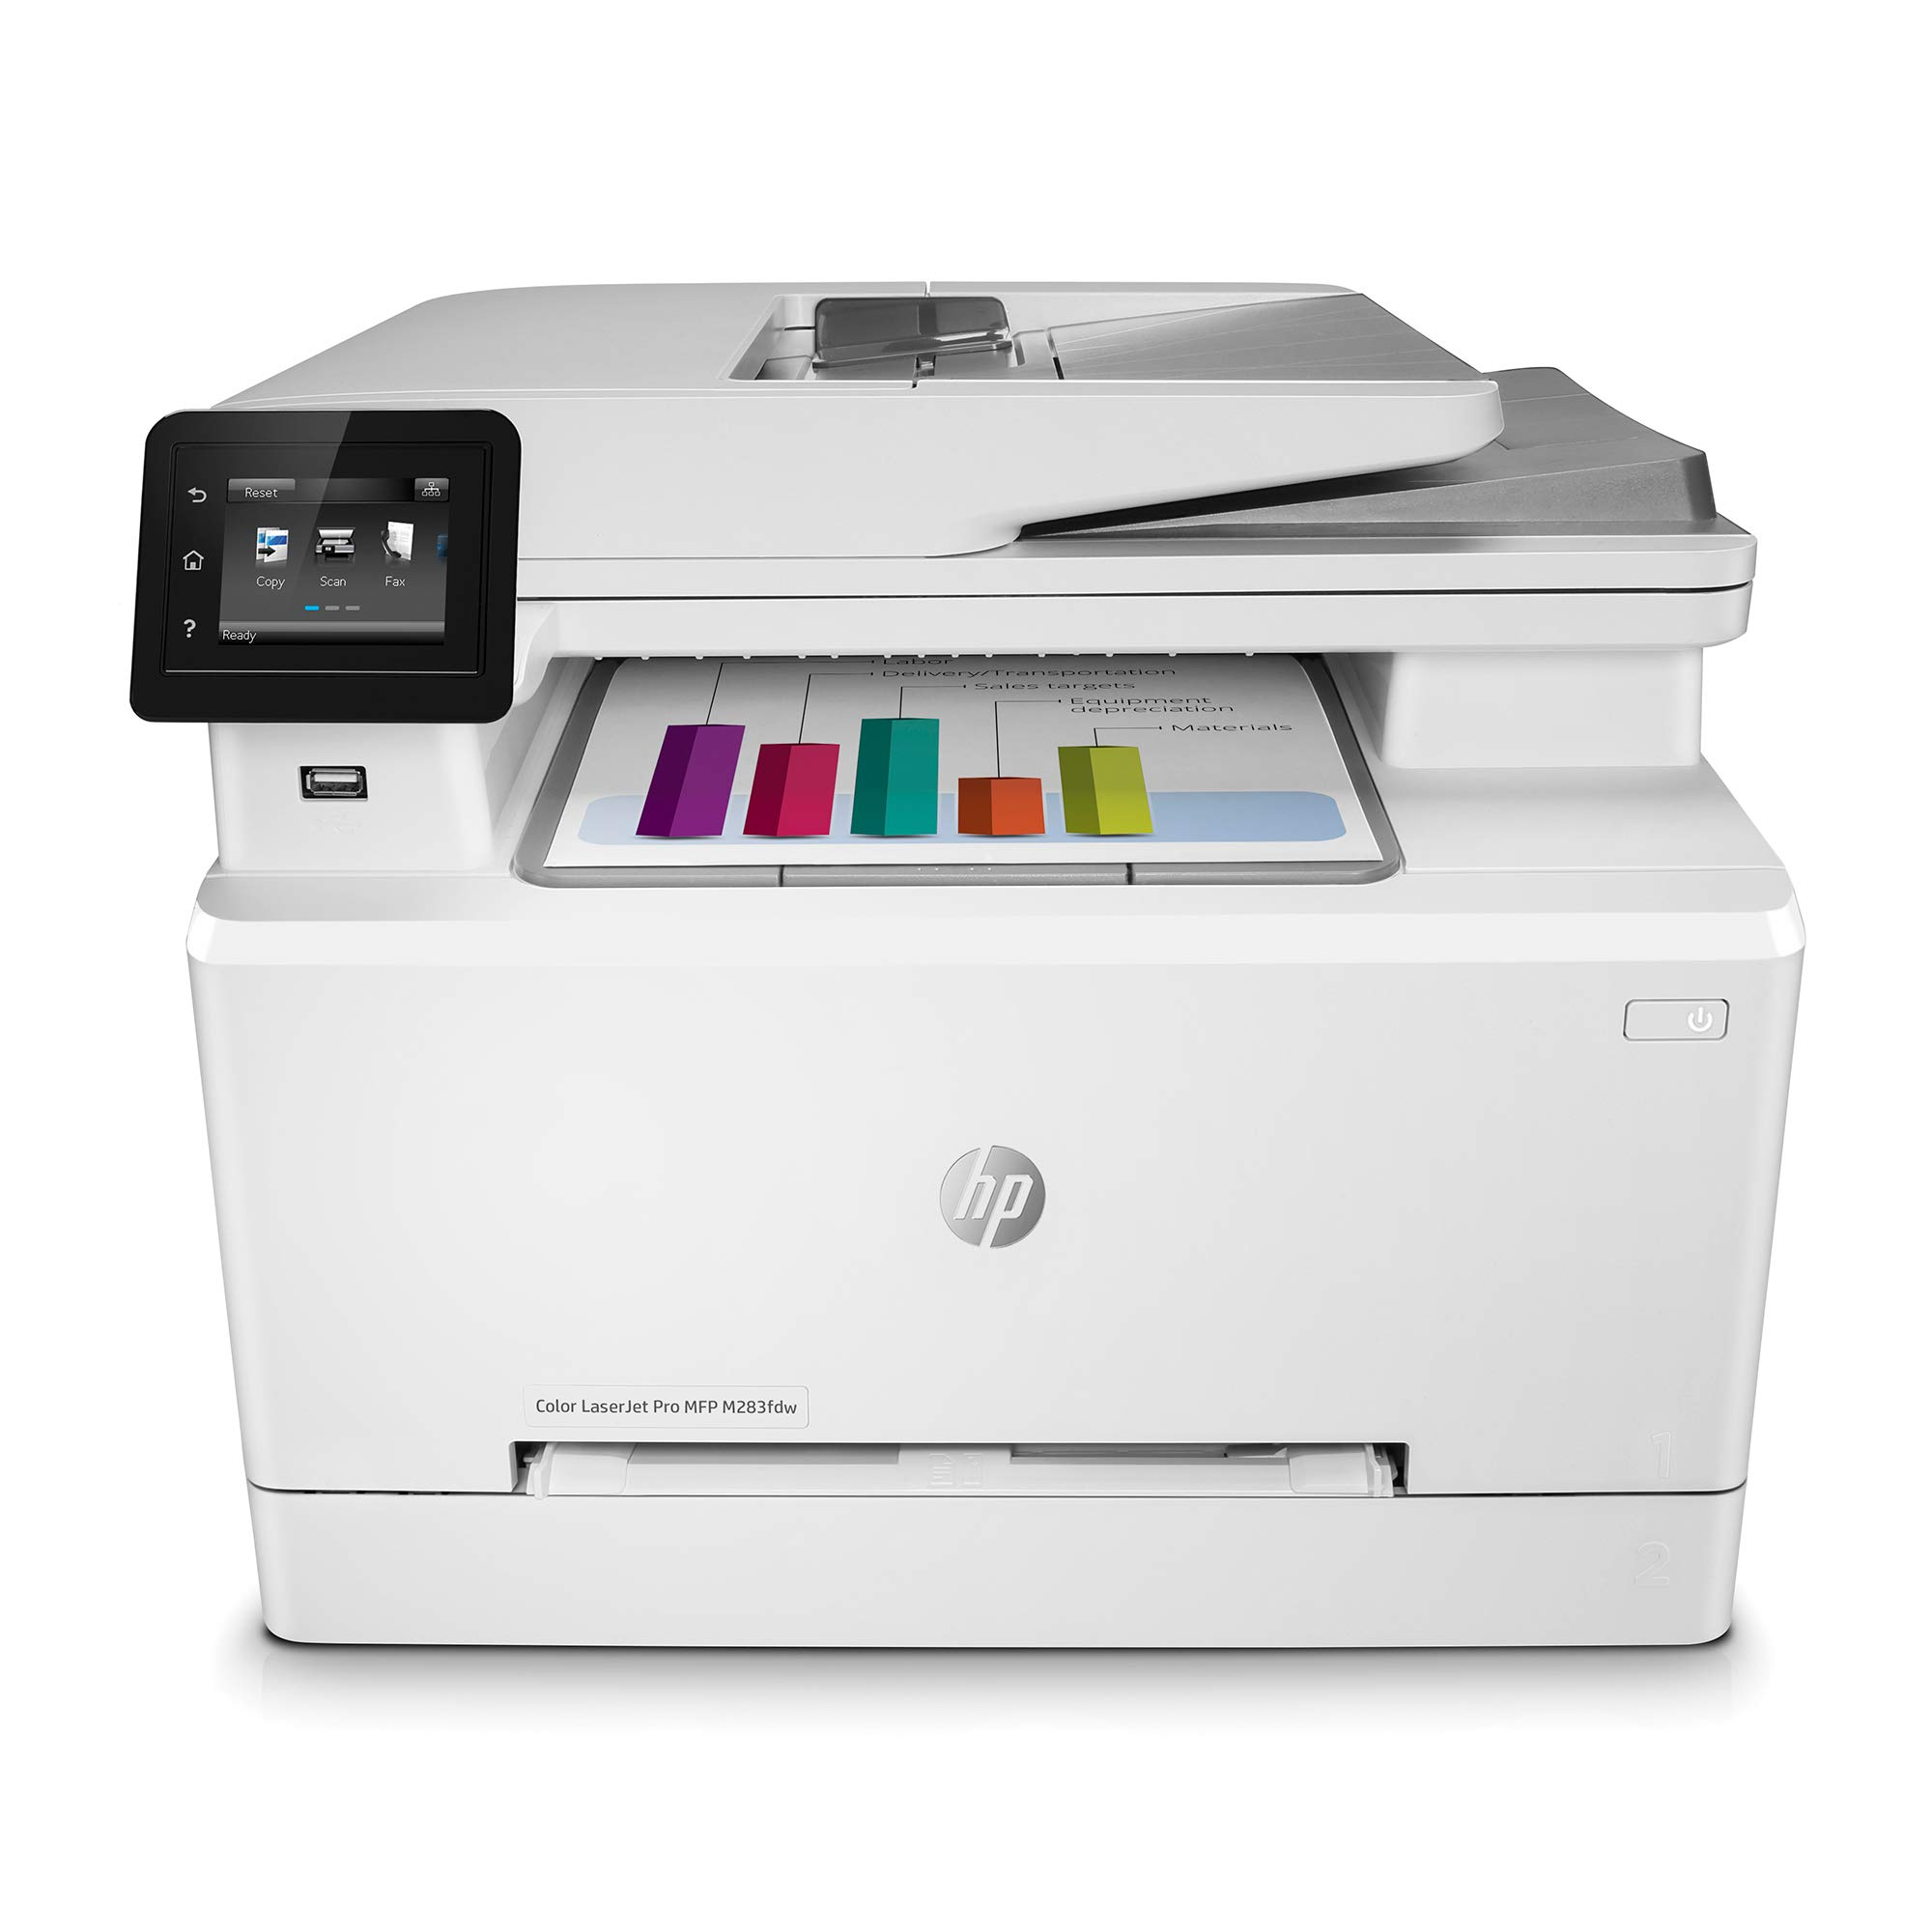 HP Colour LaserJet Pro M283fdw Multi-Function Printer (3 Years HP Commercial Warranty), White